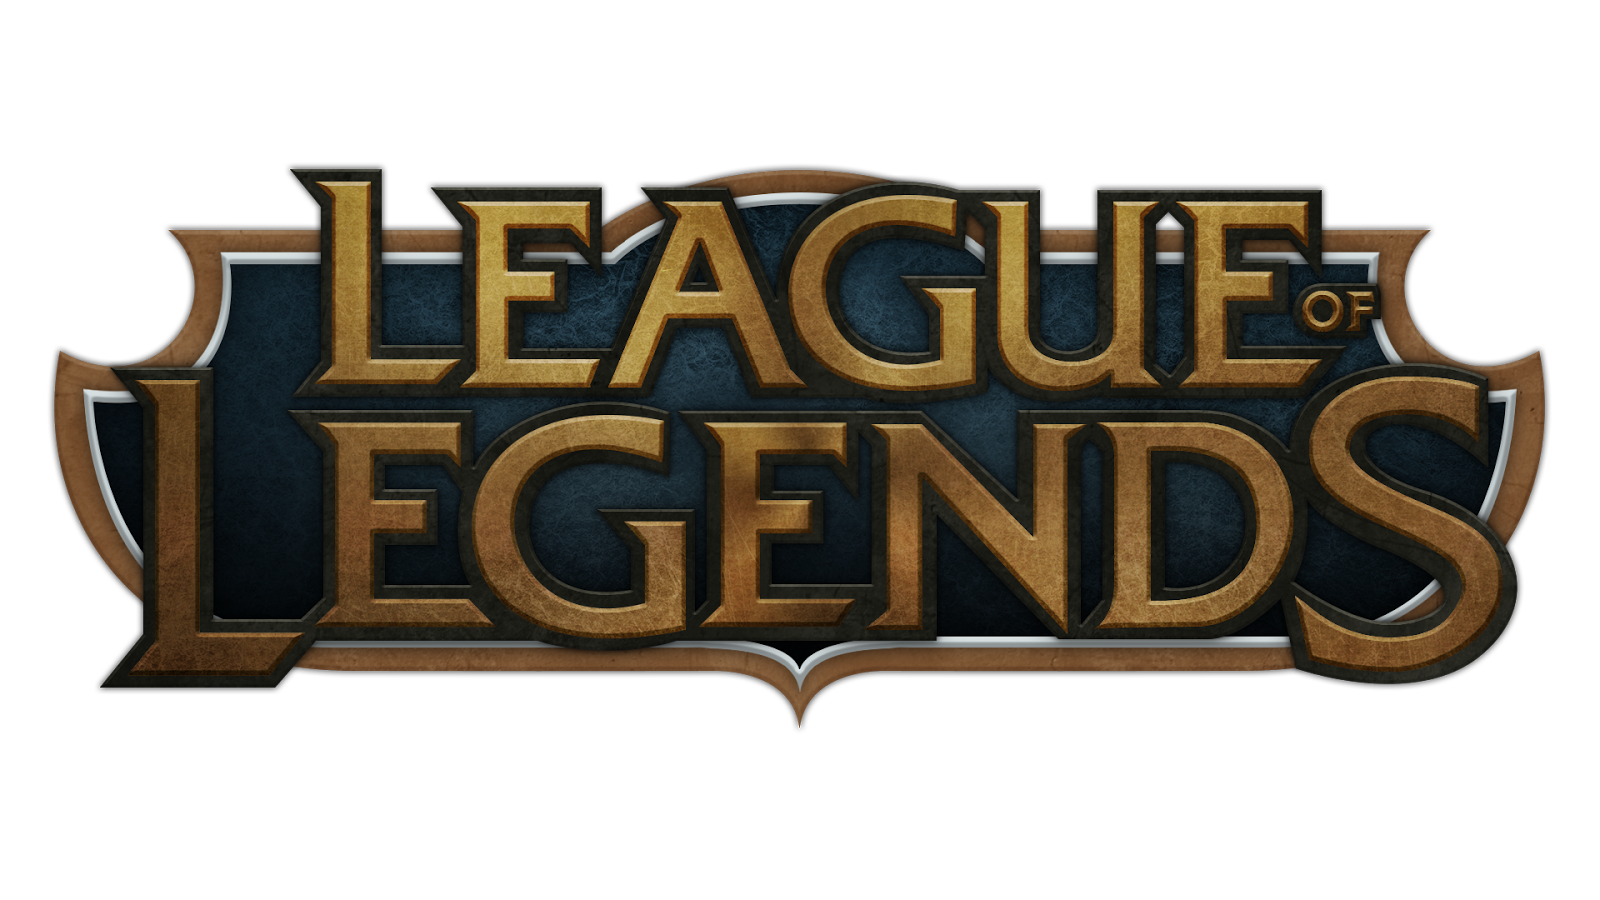 clipart league of legends clipground openoffice clipart download open office clip art library